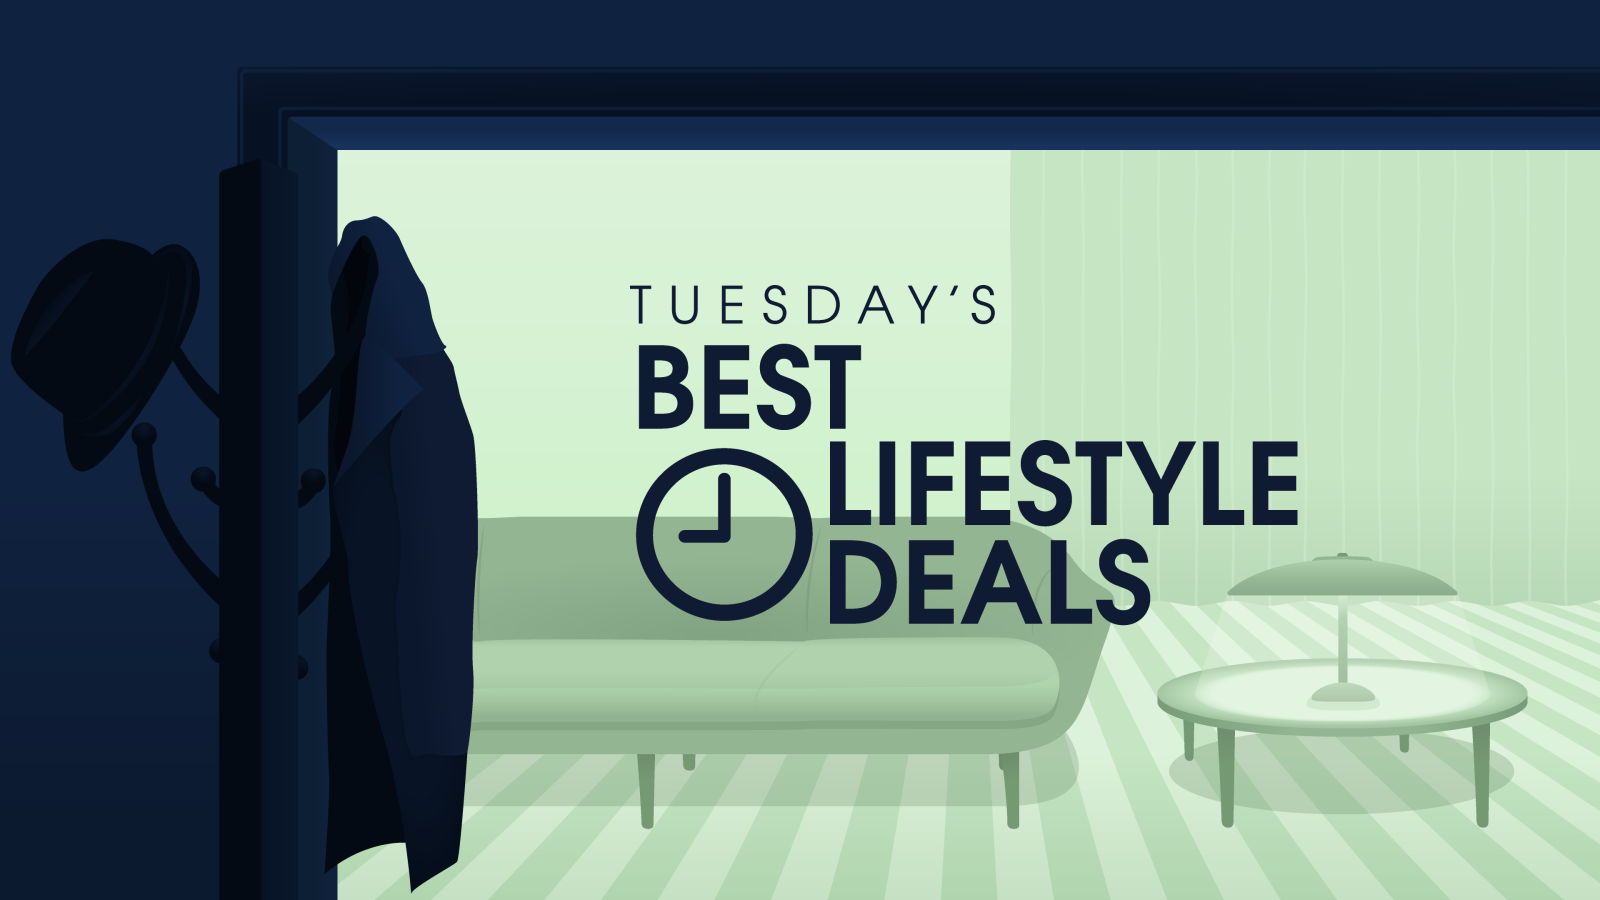 Tuesday's Best Lifestyle Deals: Sperry, J.Crew's Fall Event, Dyson Sale, more